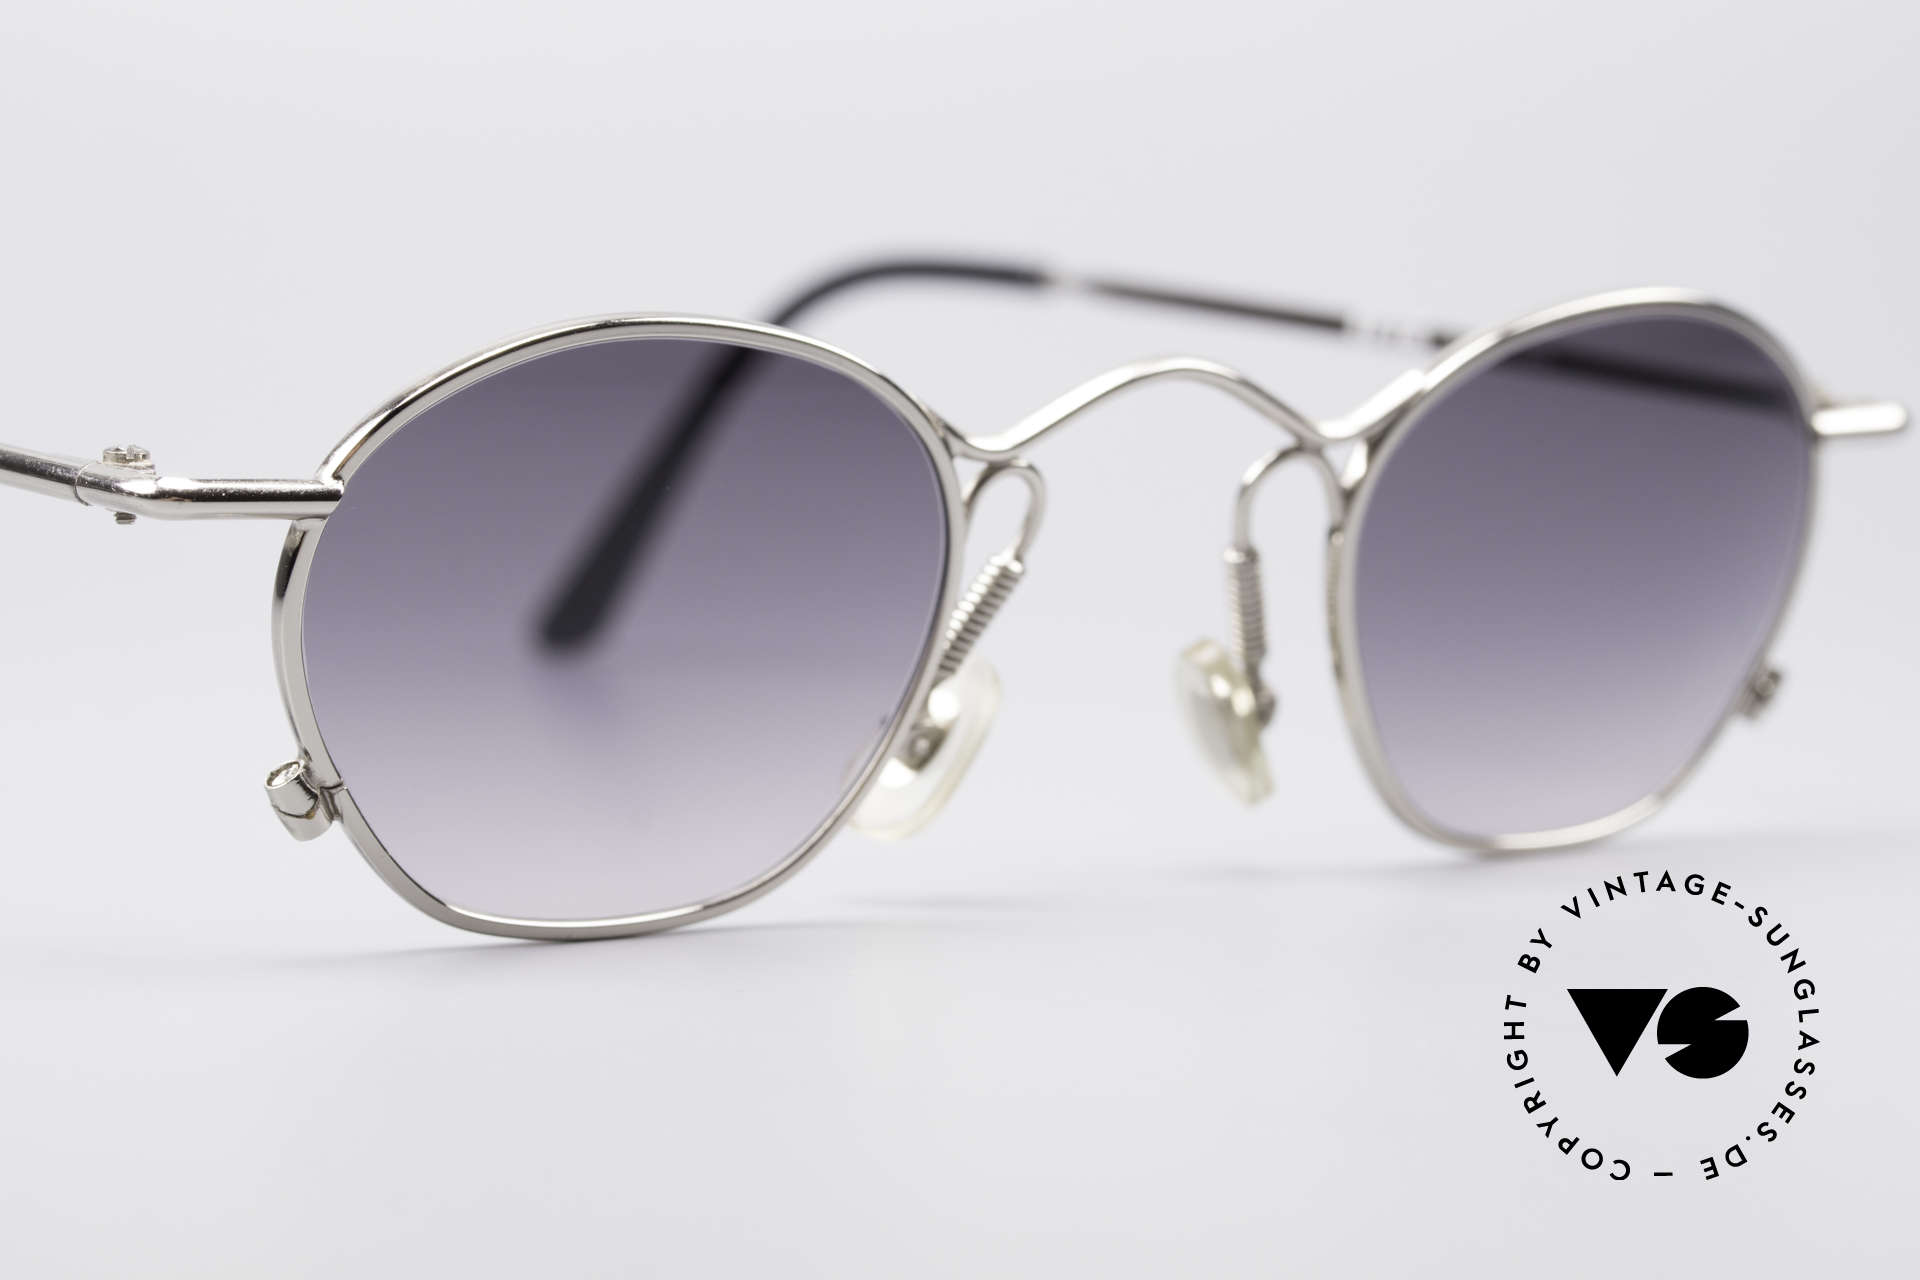 IDC 101 True Vintage No Retro Shades, new old stock (like all our rare 90s designer shades), Made for Men and Women